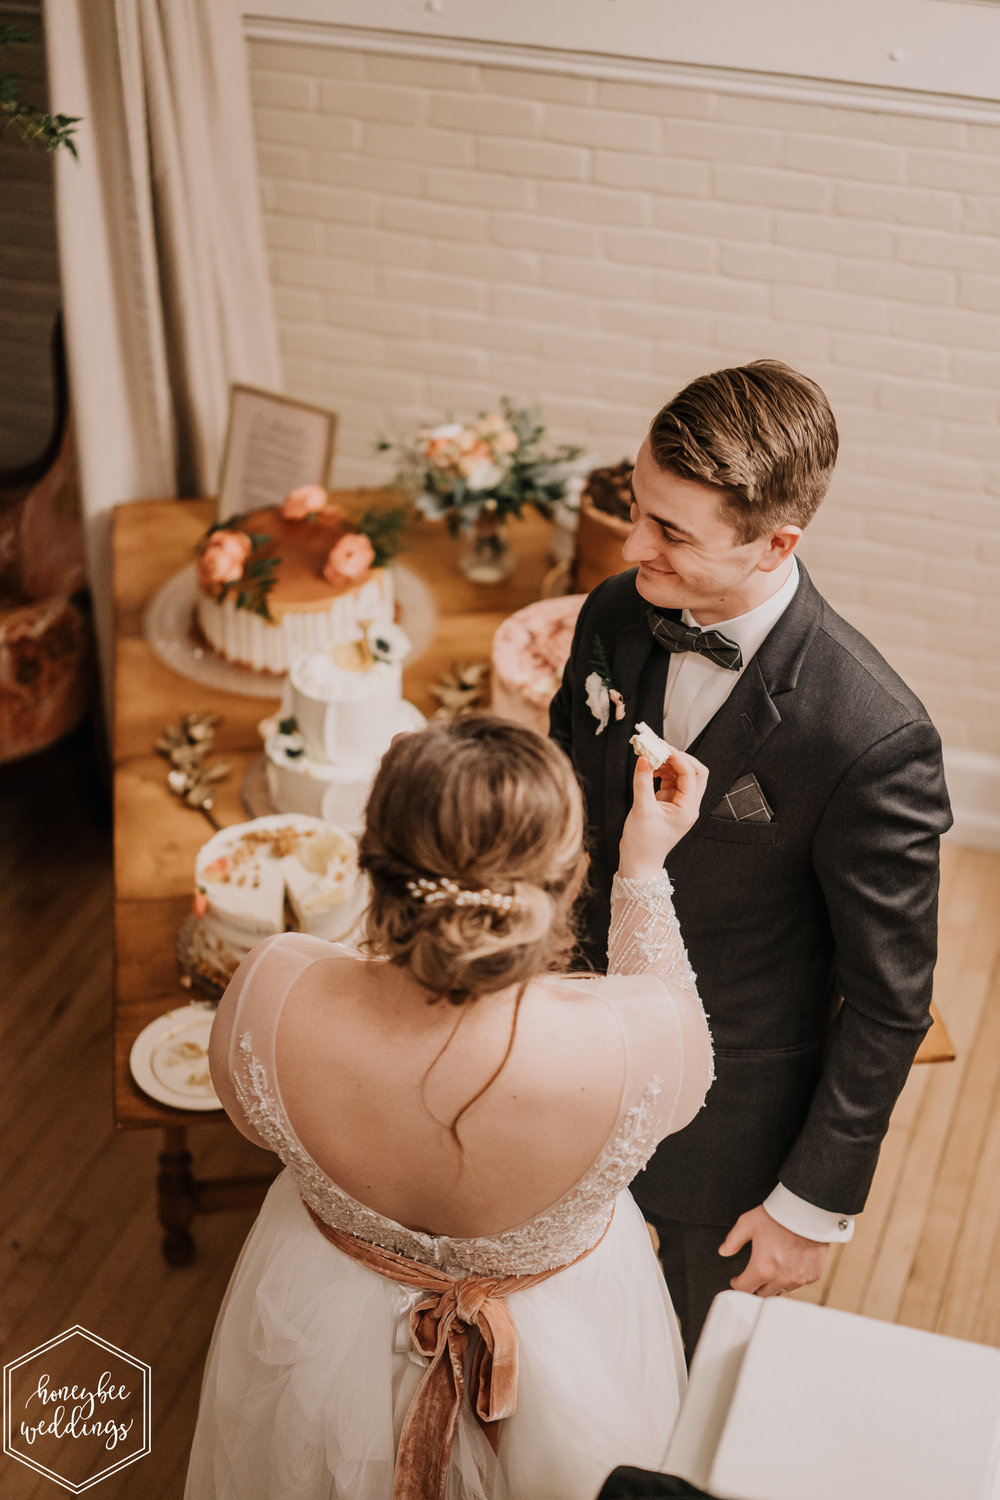 0292Montana Wedding Photographer_Montana winter wedding_Wedding at Fort Missoula_Meri & Carter_January 19, 2019-258.jpg